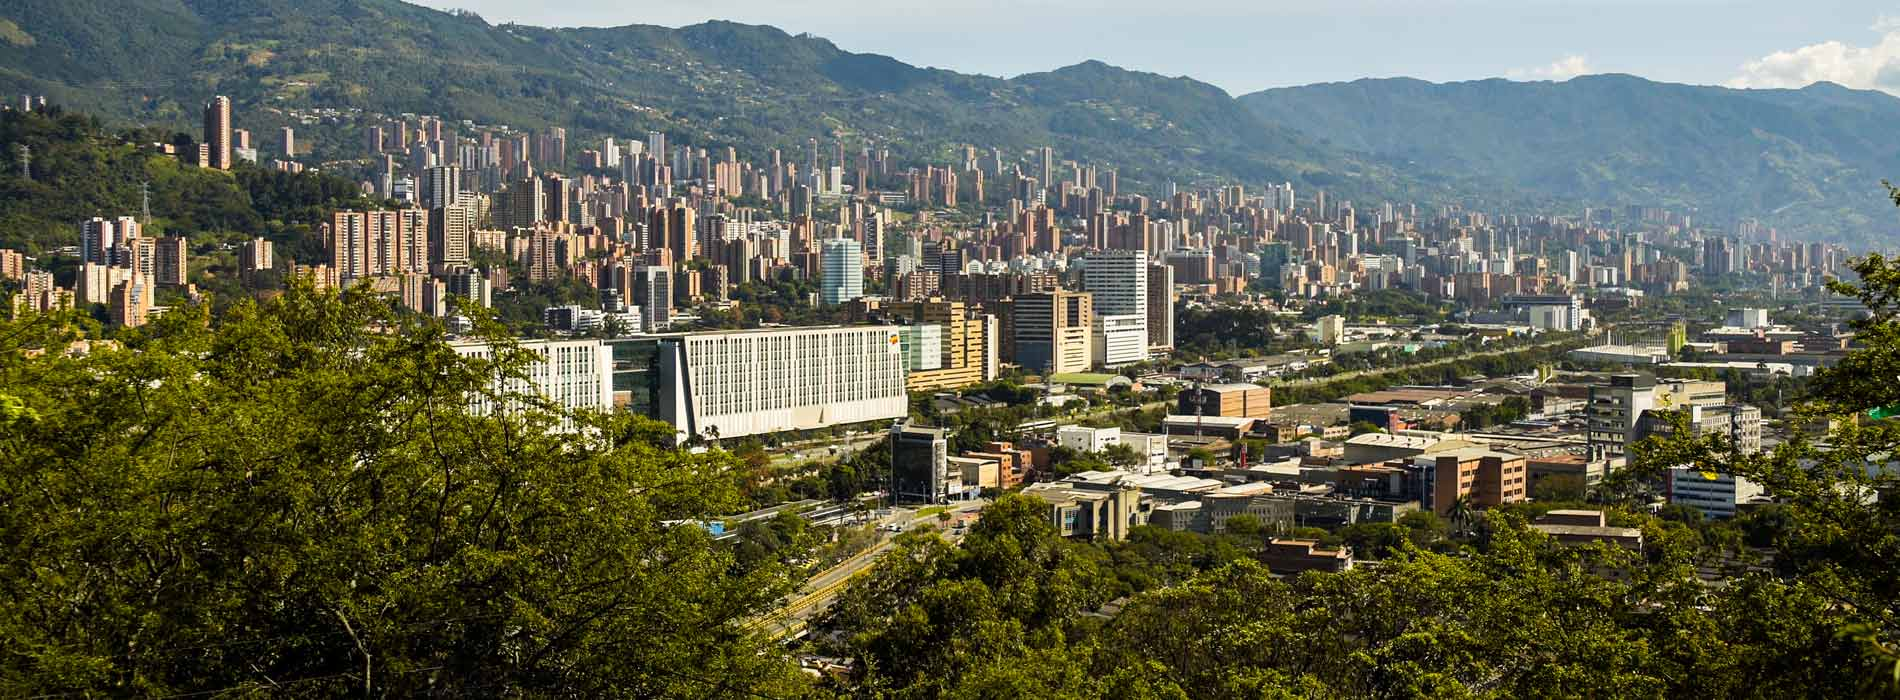 Colombia, a sustainable destination for FDI in IT, Infrastructure & Public Transports